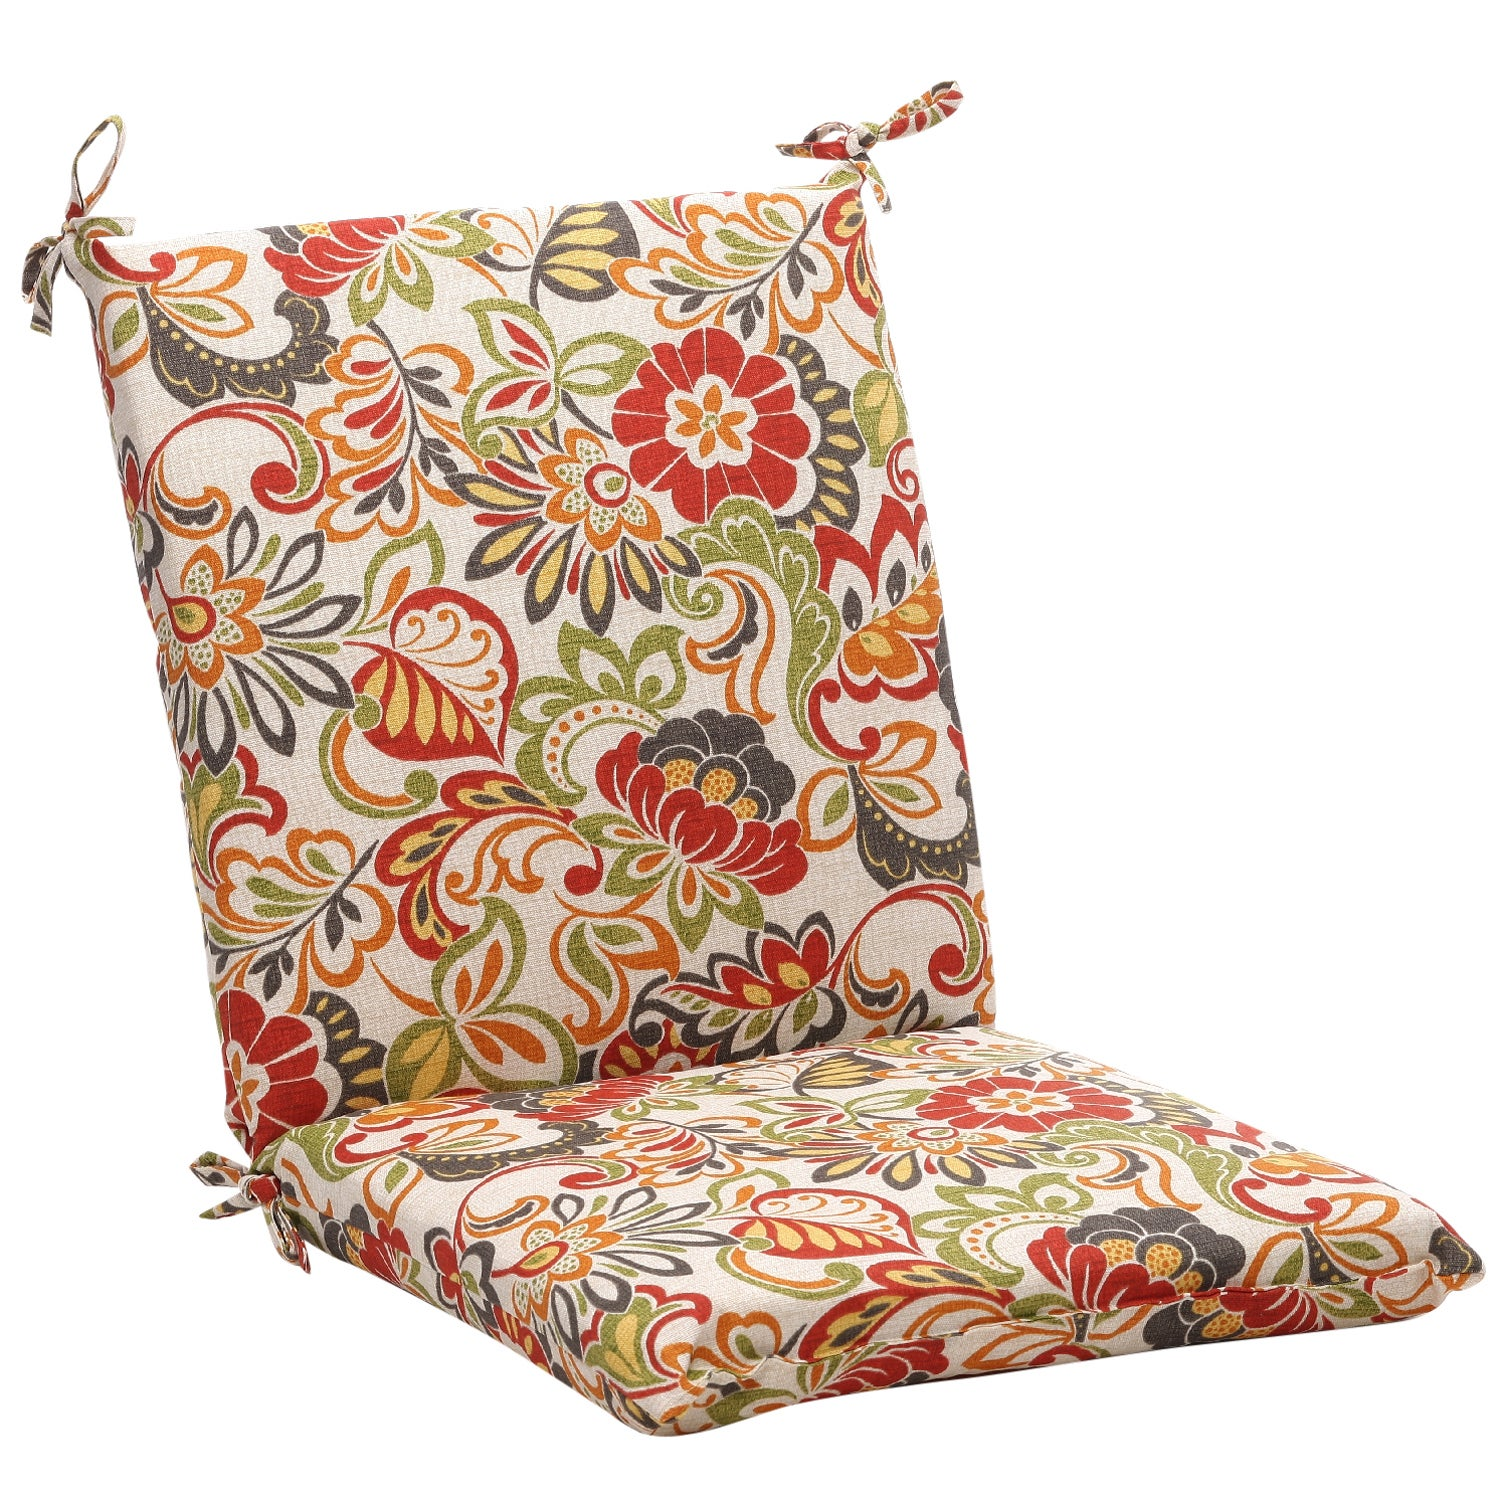 Squared Multicolored Floral Chair Outdoor Cushion Free